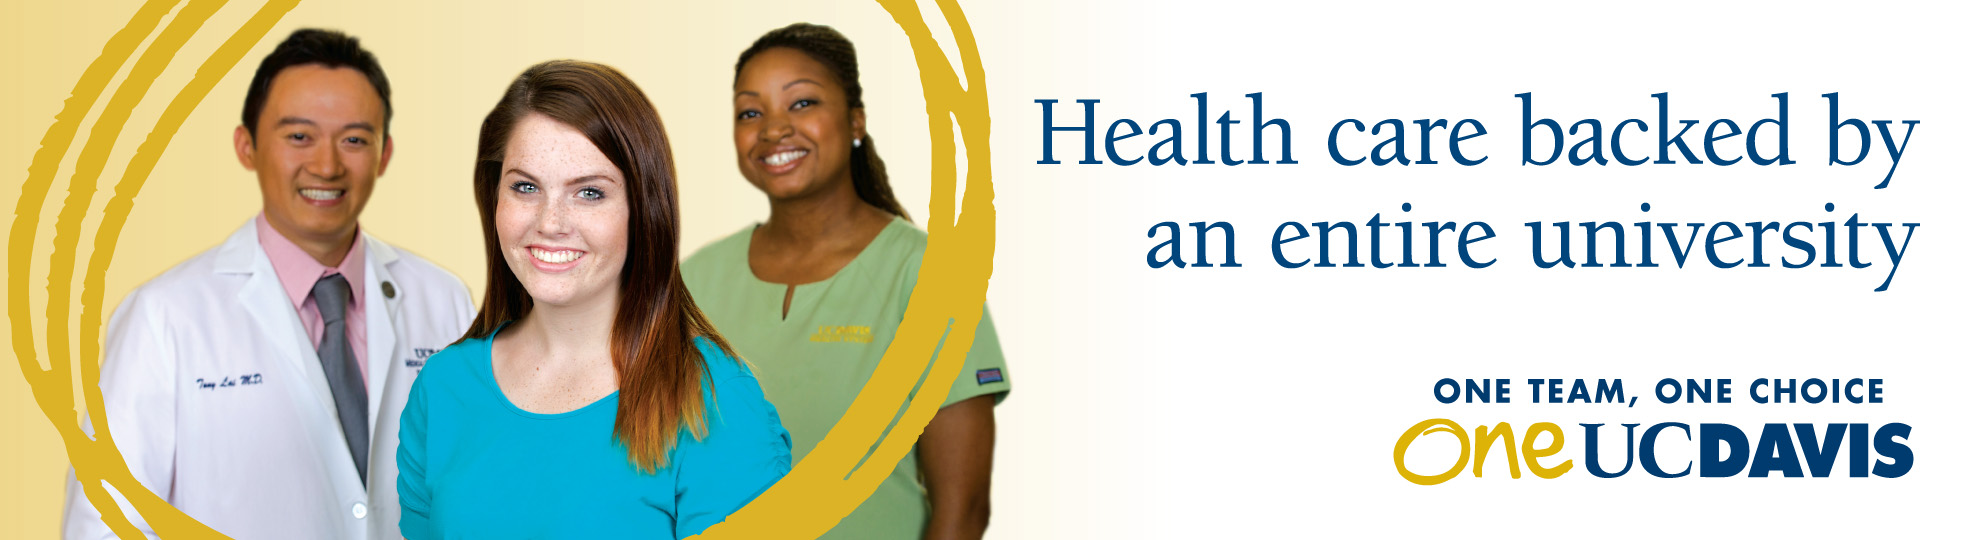 Health care backed by an entire university outdoor advertisement - One UC Davis